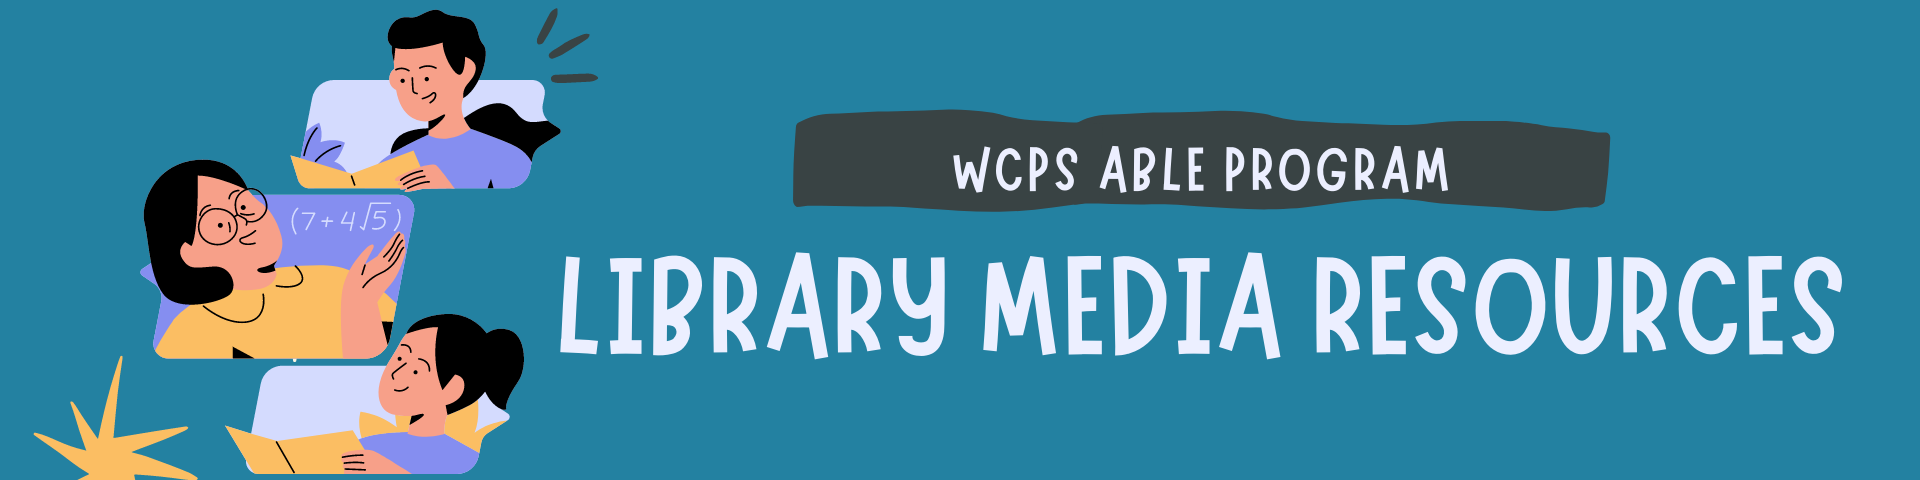 WCPS ABLE Program Library Media Resources